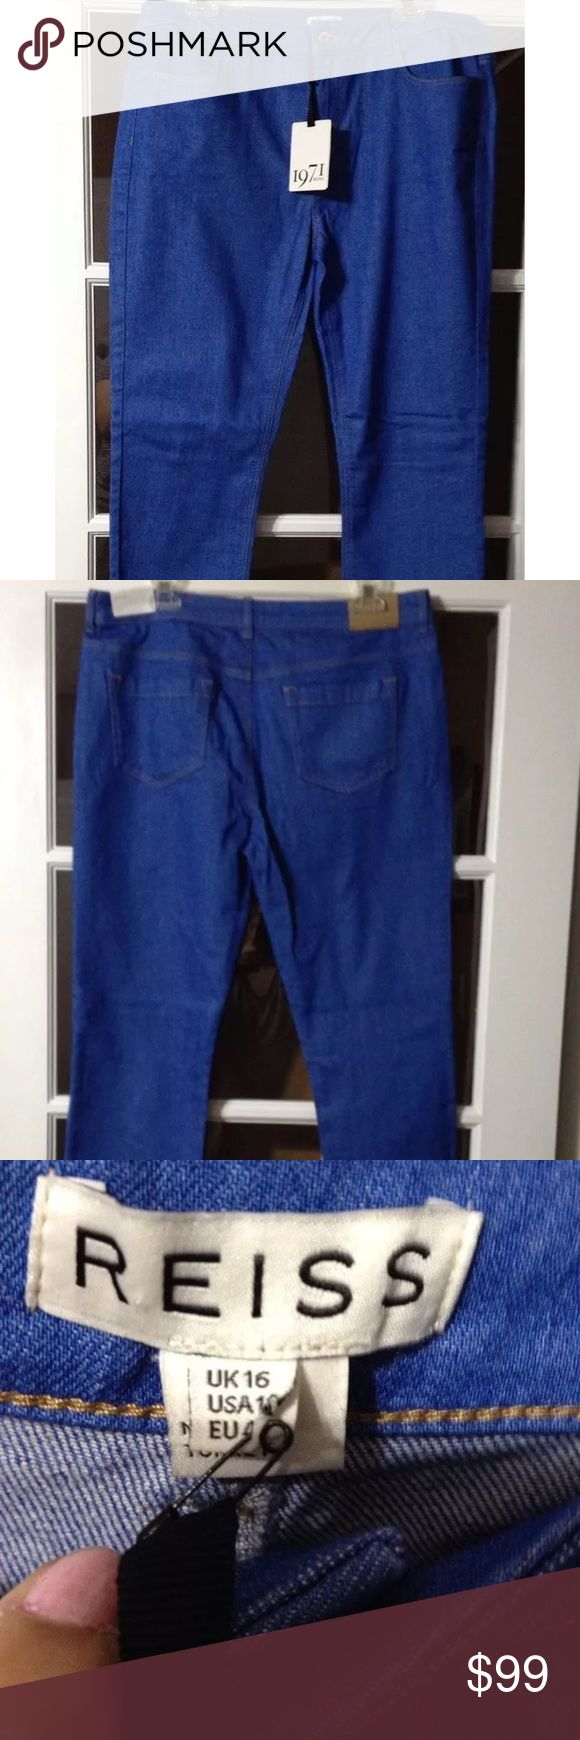 👖1 HR SALE👖REISS Smith Cropped Skinny Jeans Great brand! Great Jeans at an amazing price. NWT Reiss Jeans Skinny